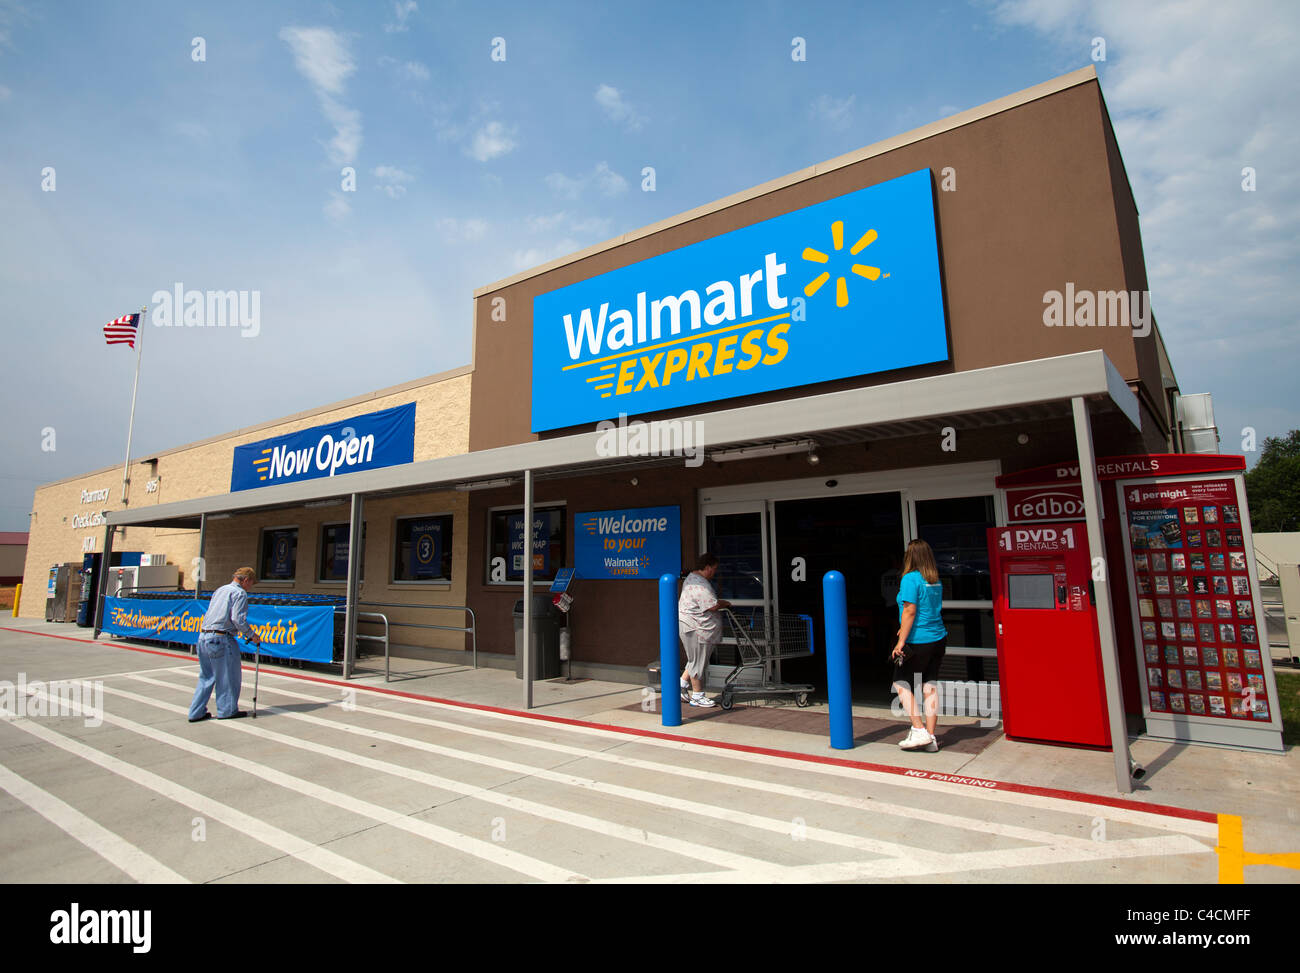 Customers enter a Walmart Express store in Gentry